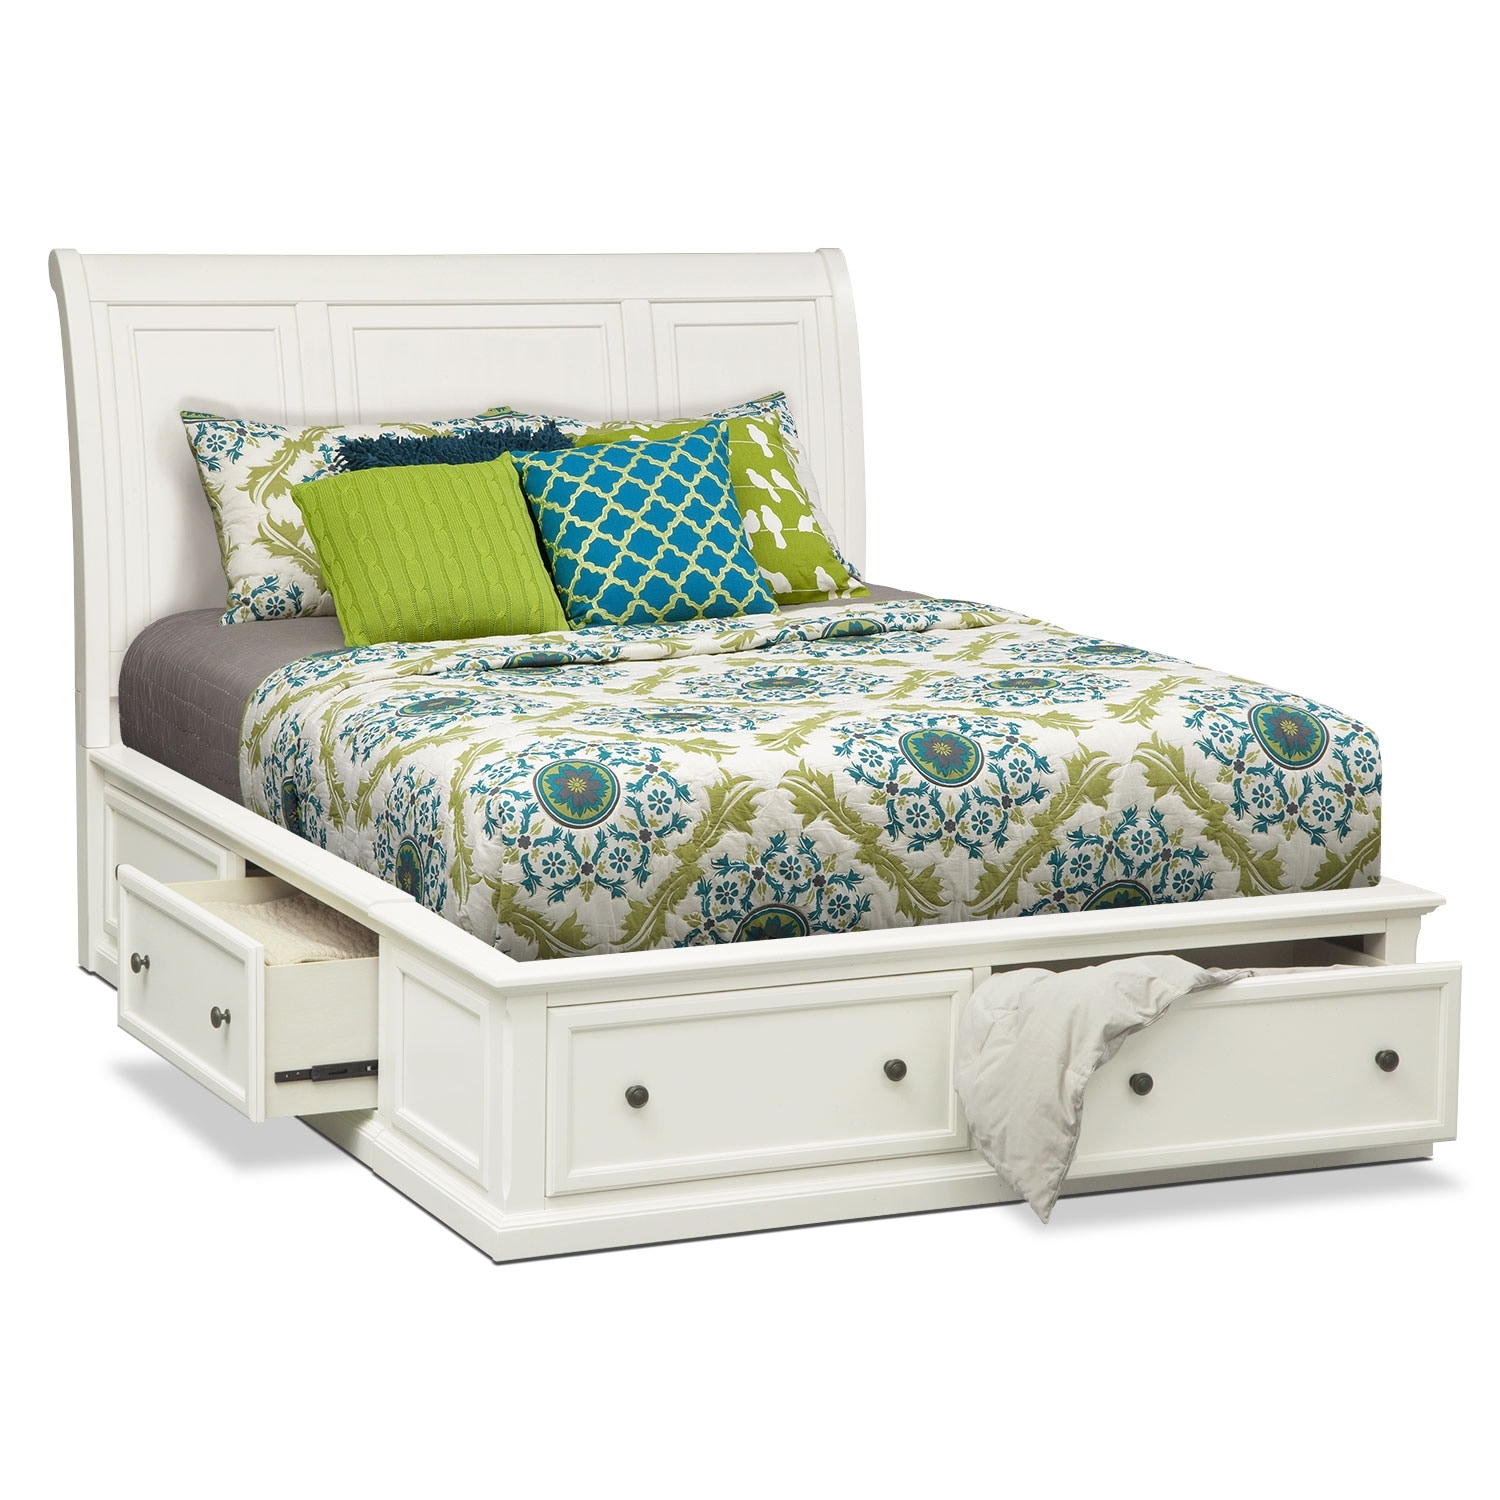 Storage Bedroom Furniture: Hanover Queen Storage Bed - White